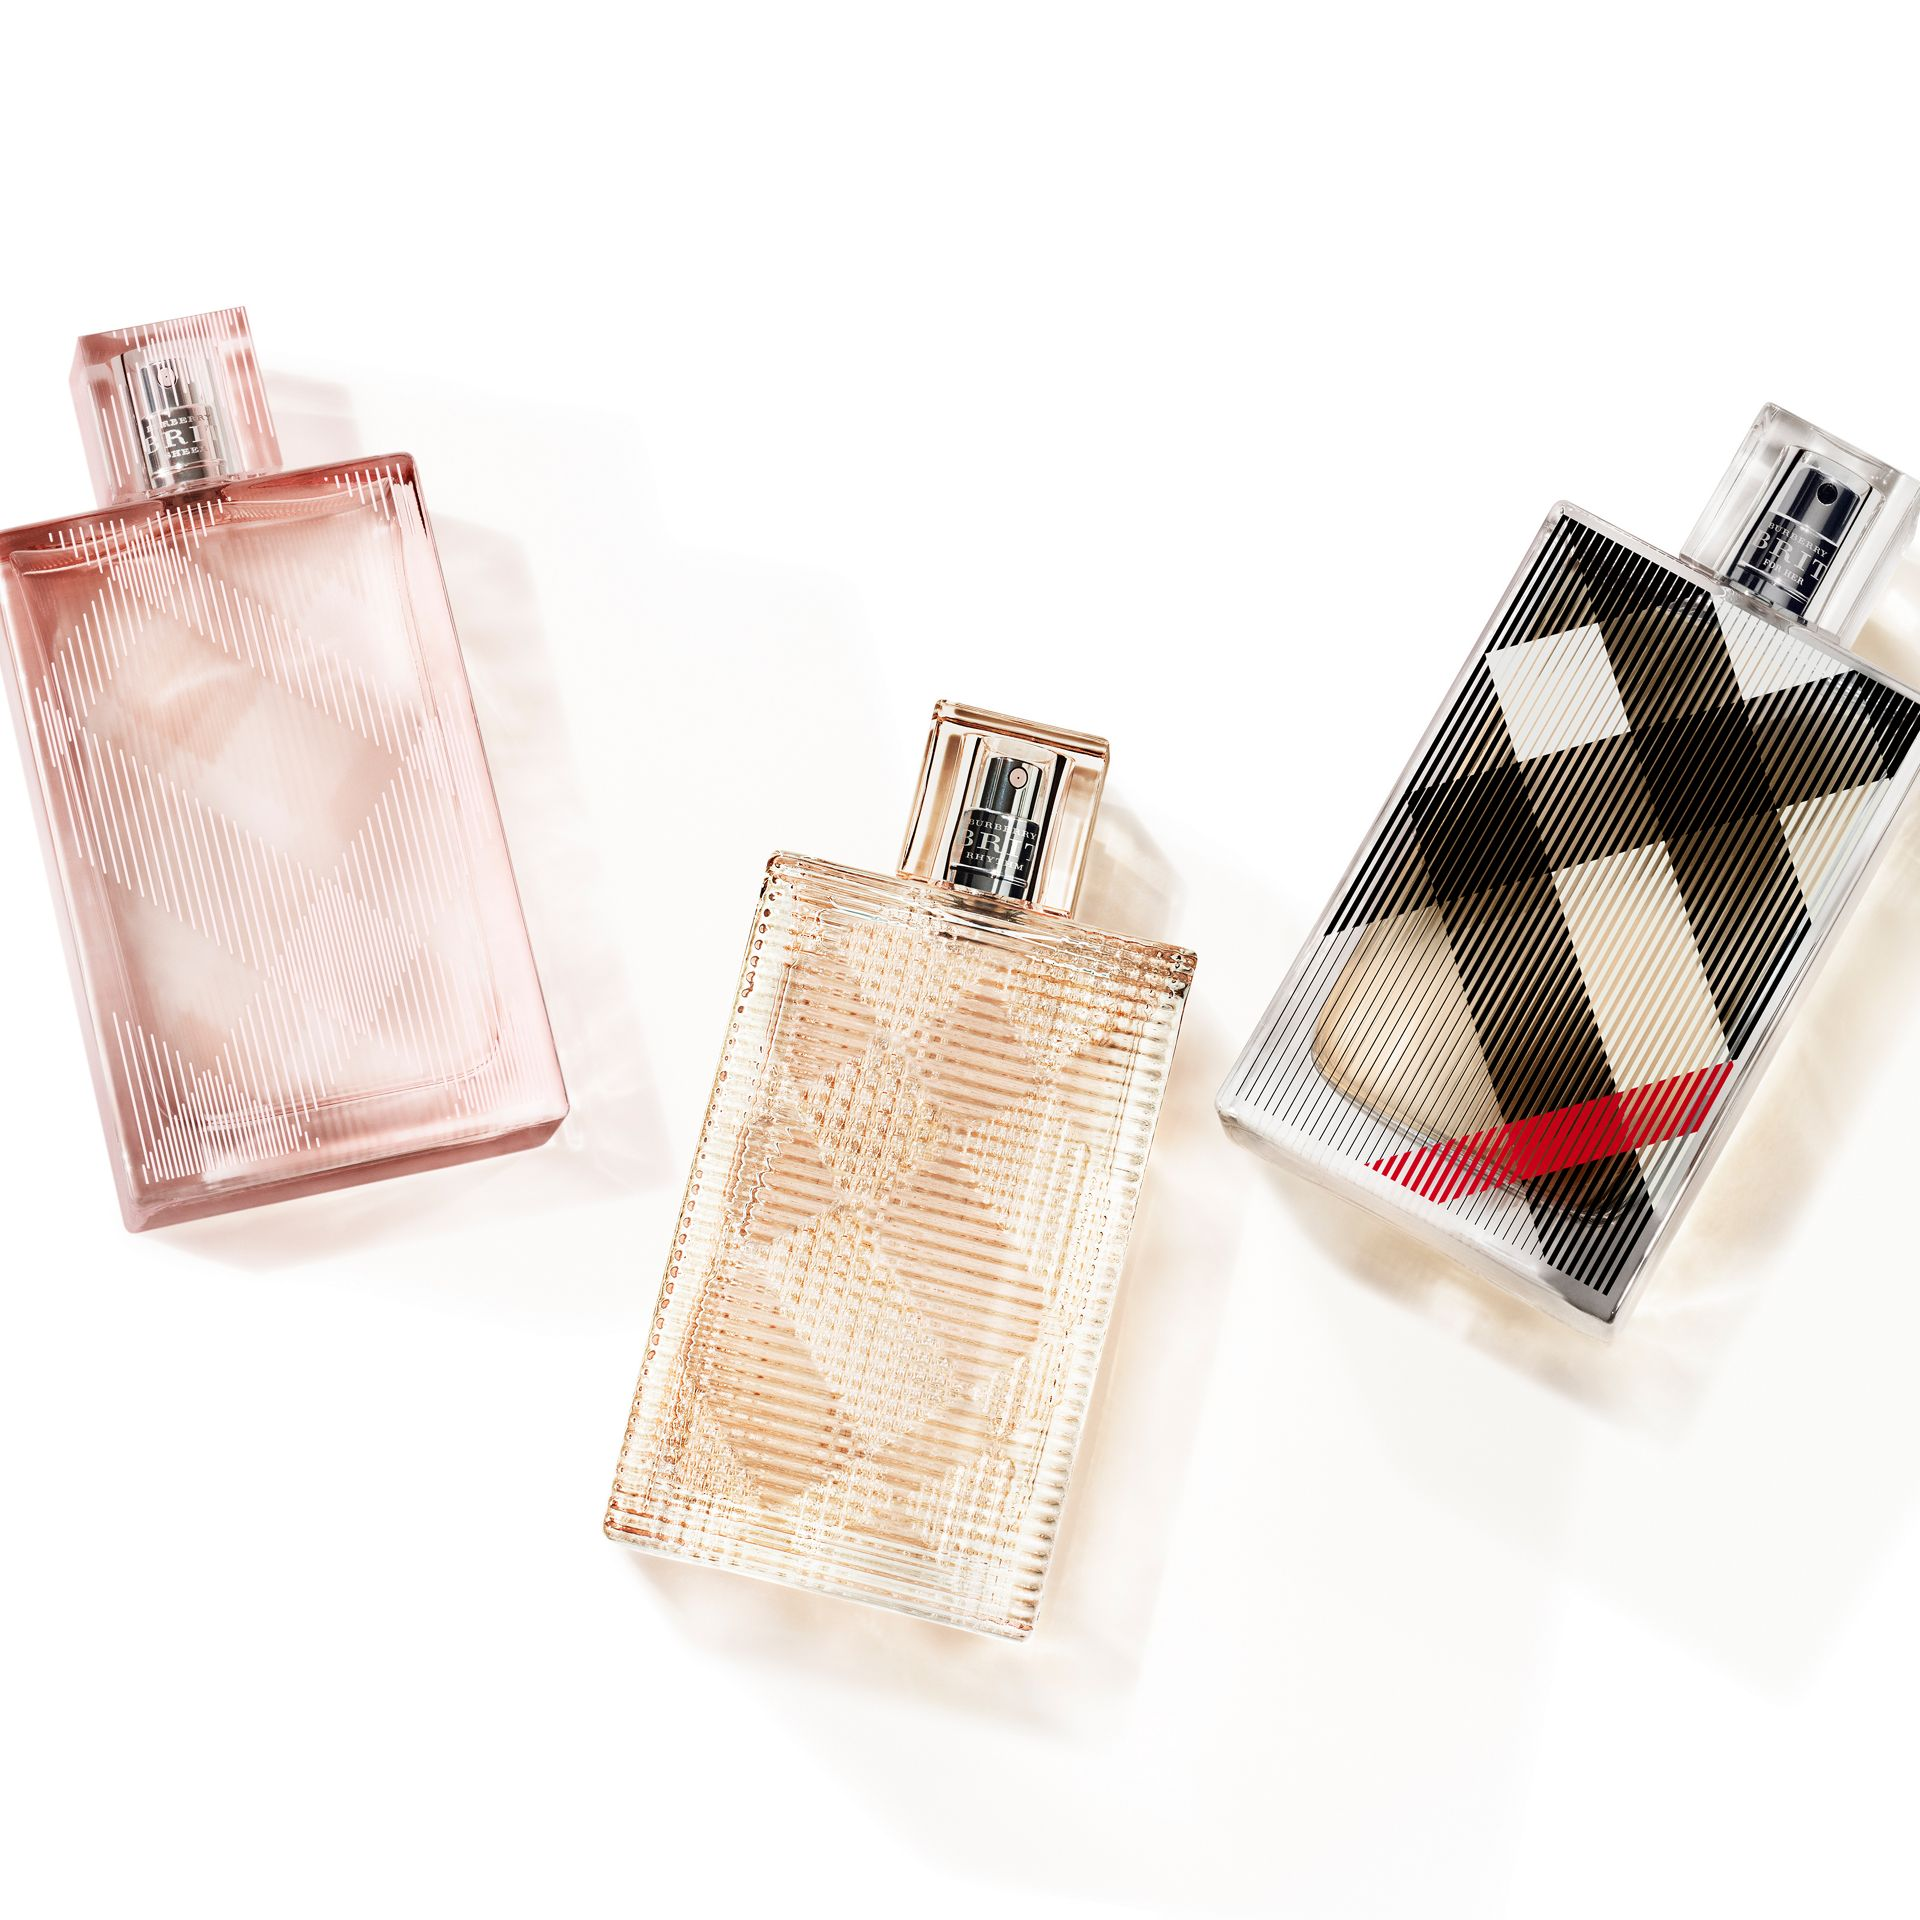 Burberry Brit For Her Eau de Toilette 50ml - Women | Burberry - gallery image 2